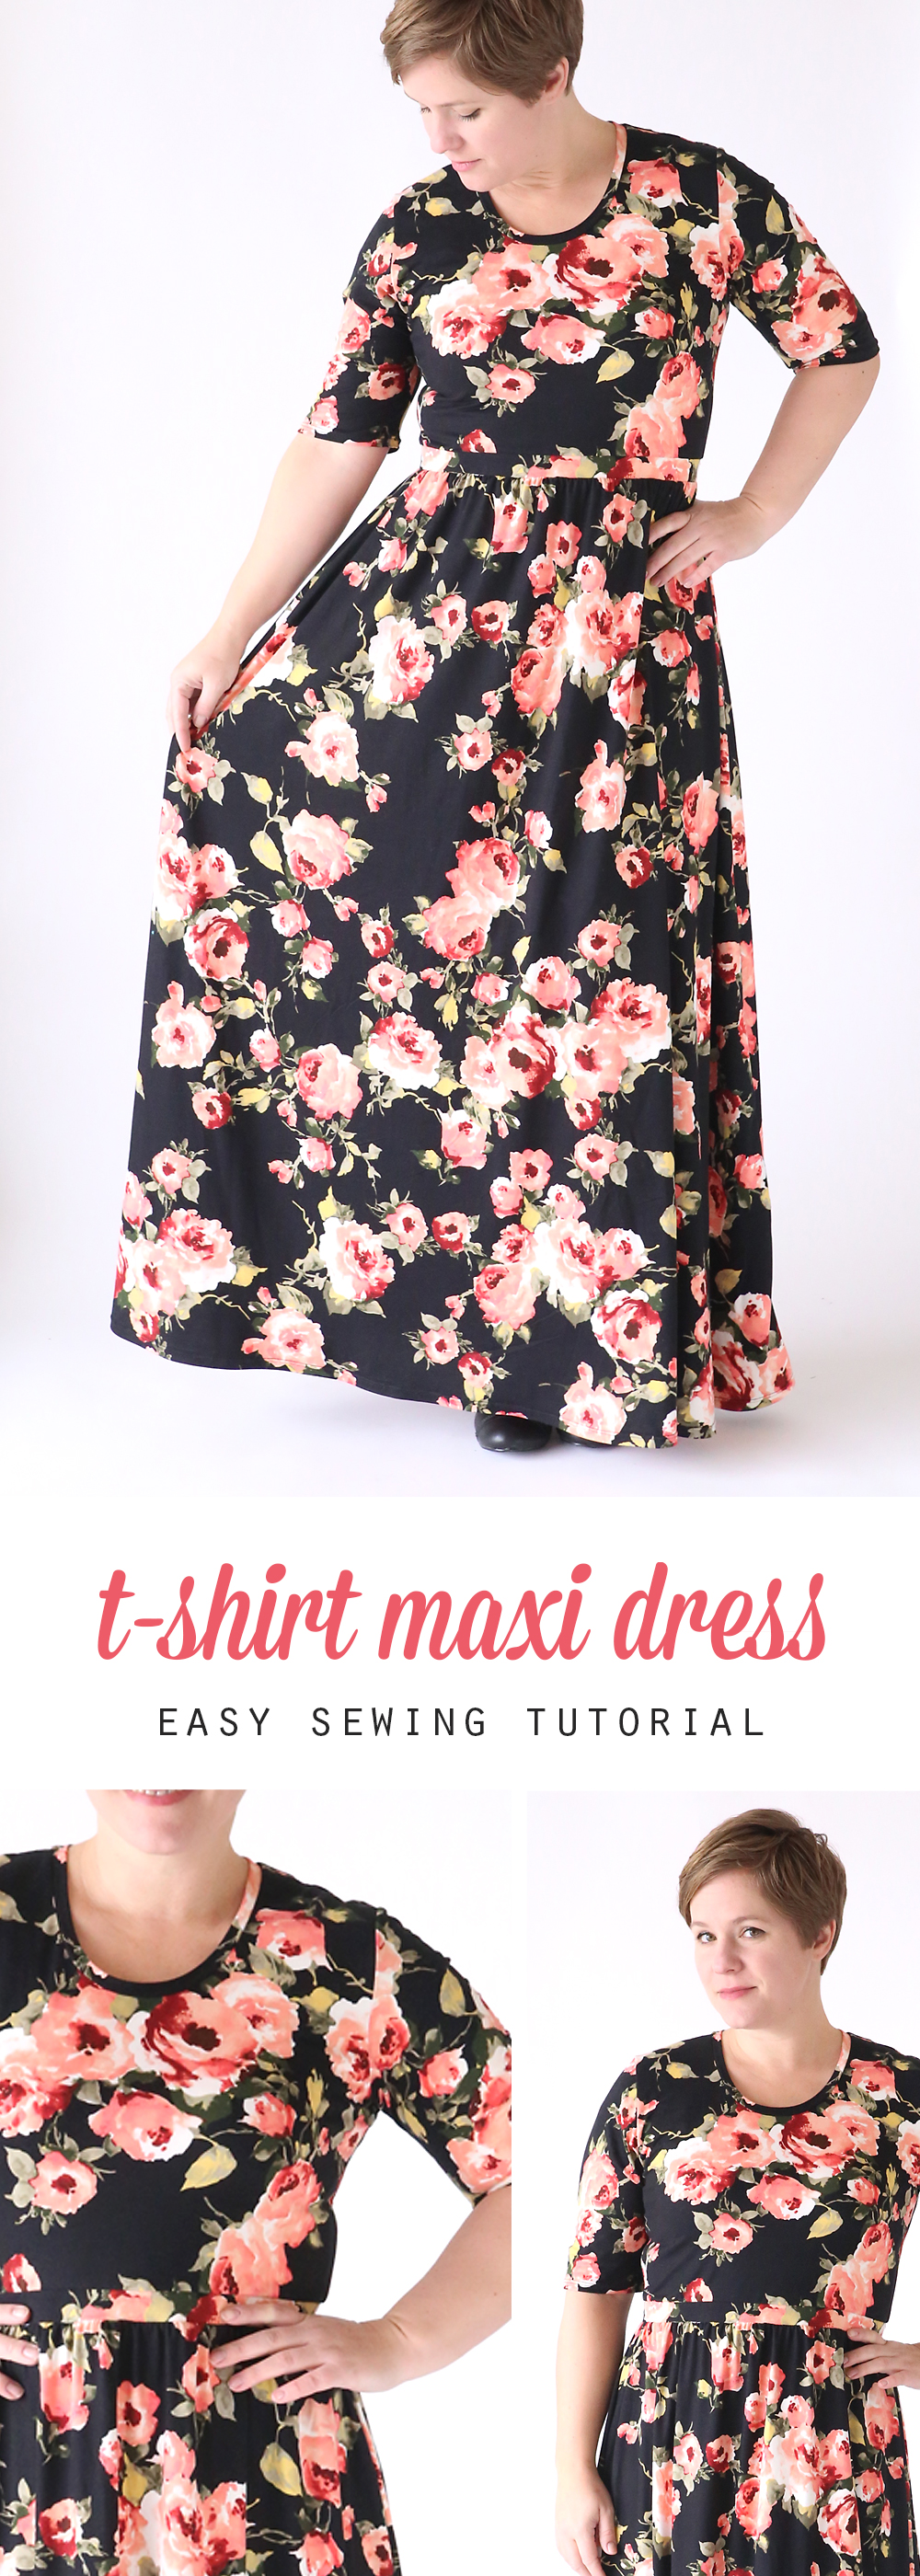 Free easy sewing maxi dress pattern